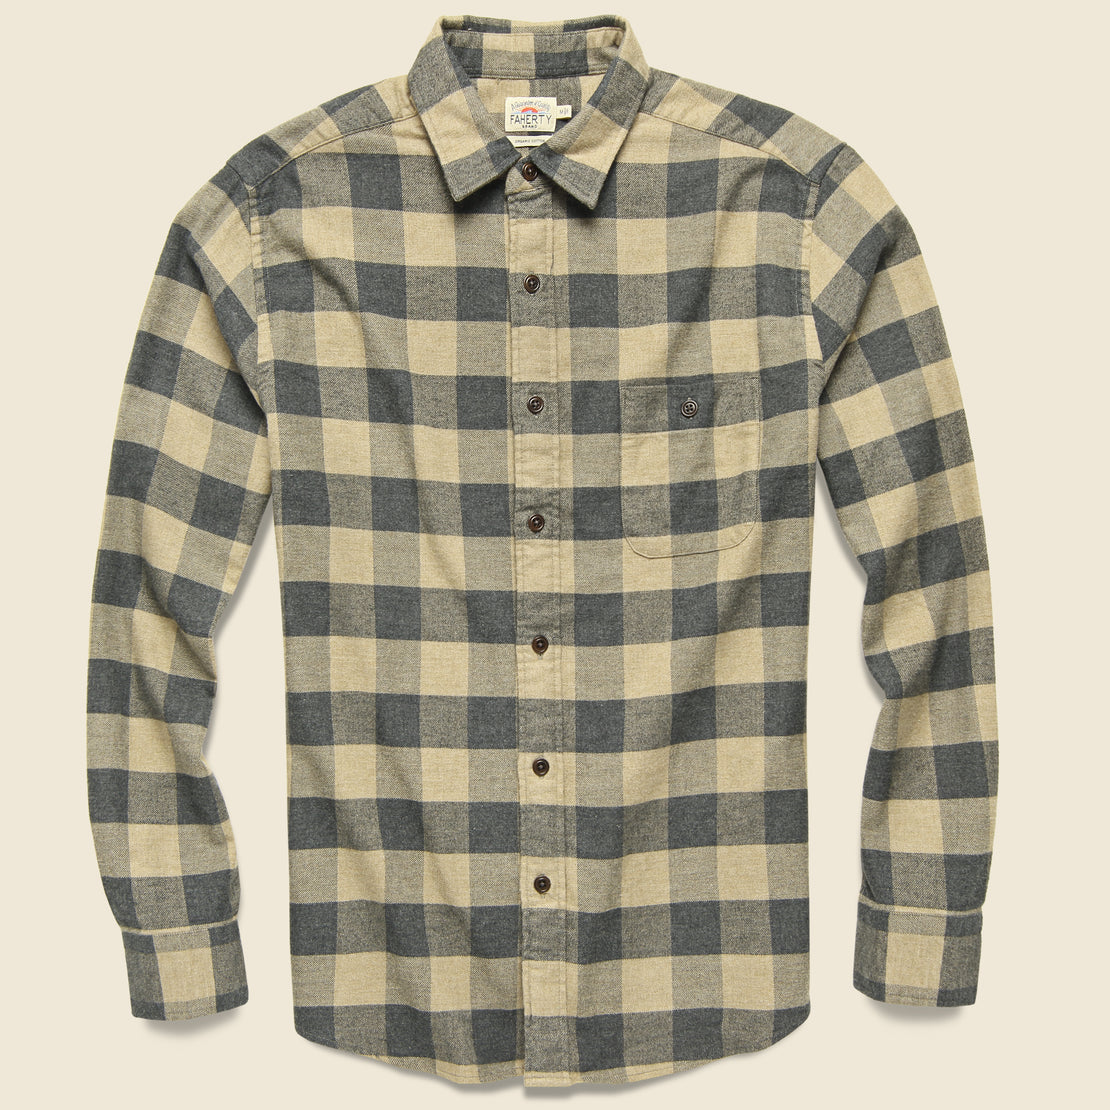 Faherty Stretch Seaview Flannel - Evans Range Buffalo